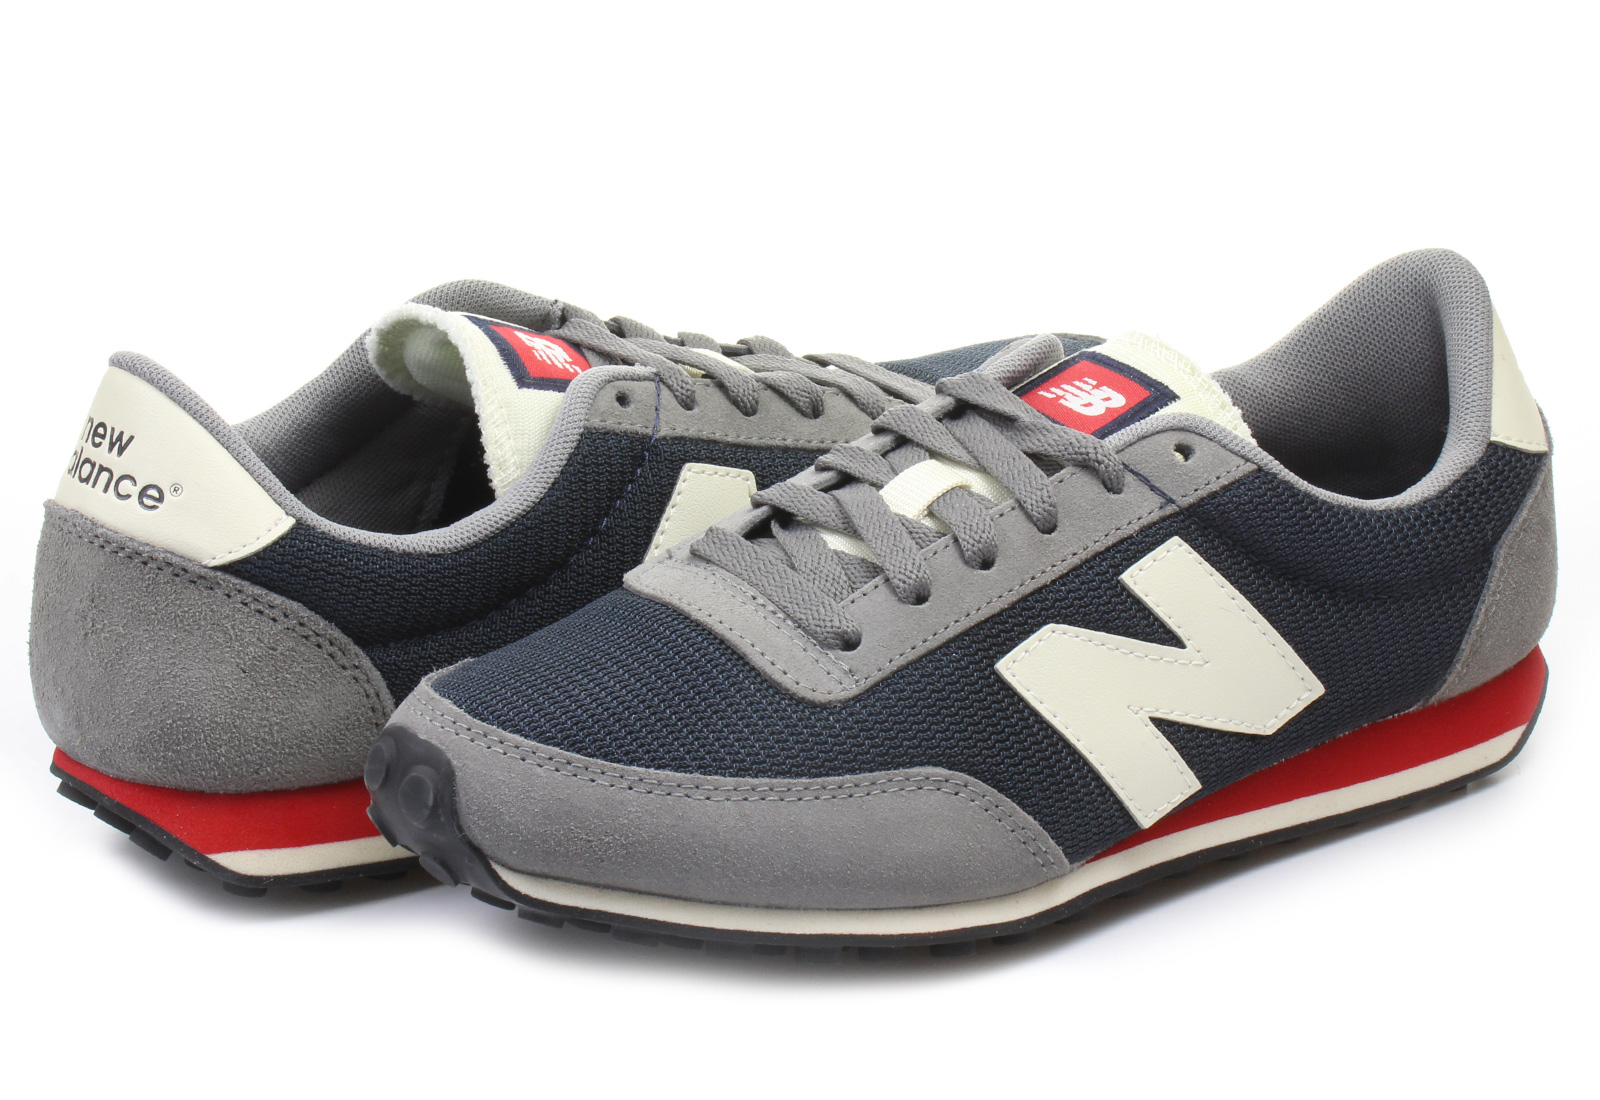 new balance shoes u410 u410hgn online shop for sneakers shoes and boots. Black Bedroom Furniture Sets. Home Design Ideas